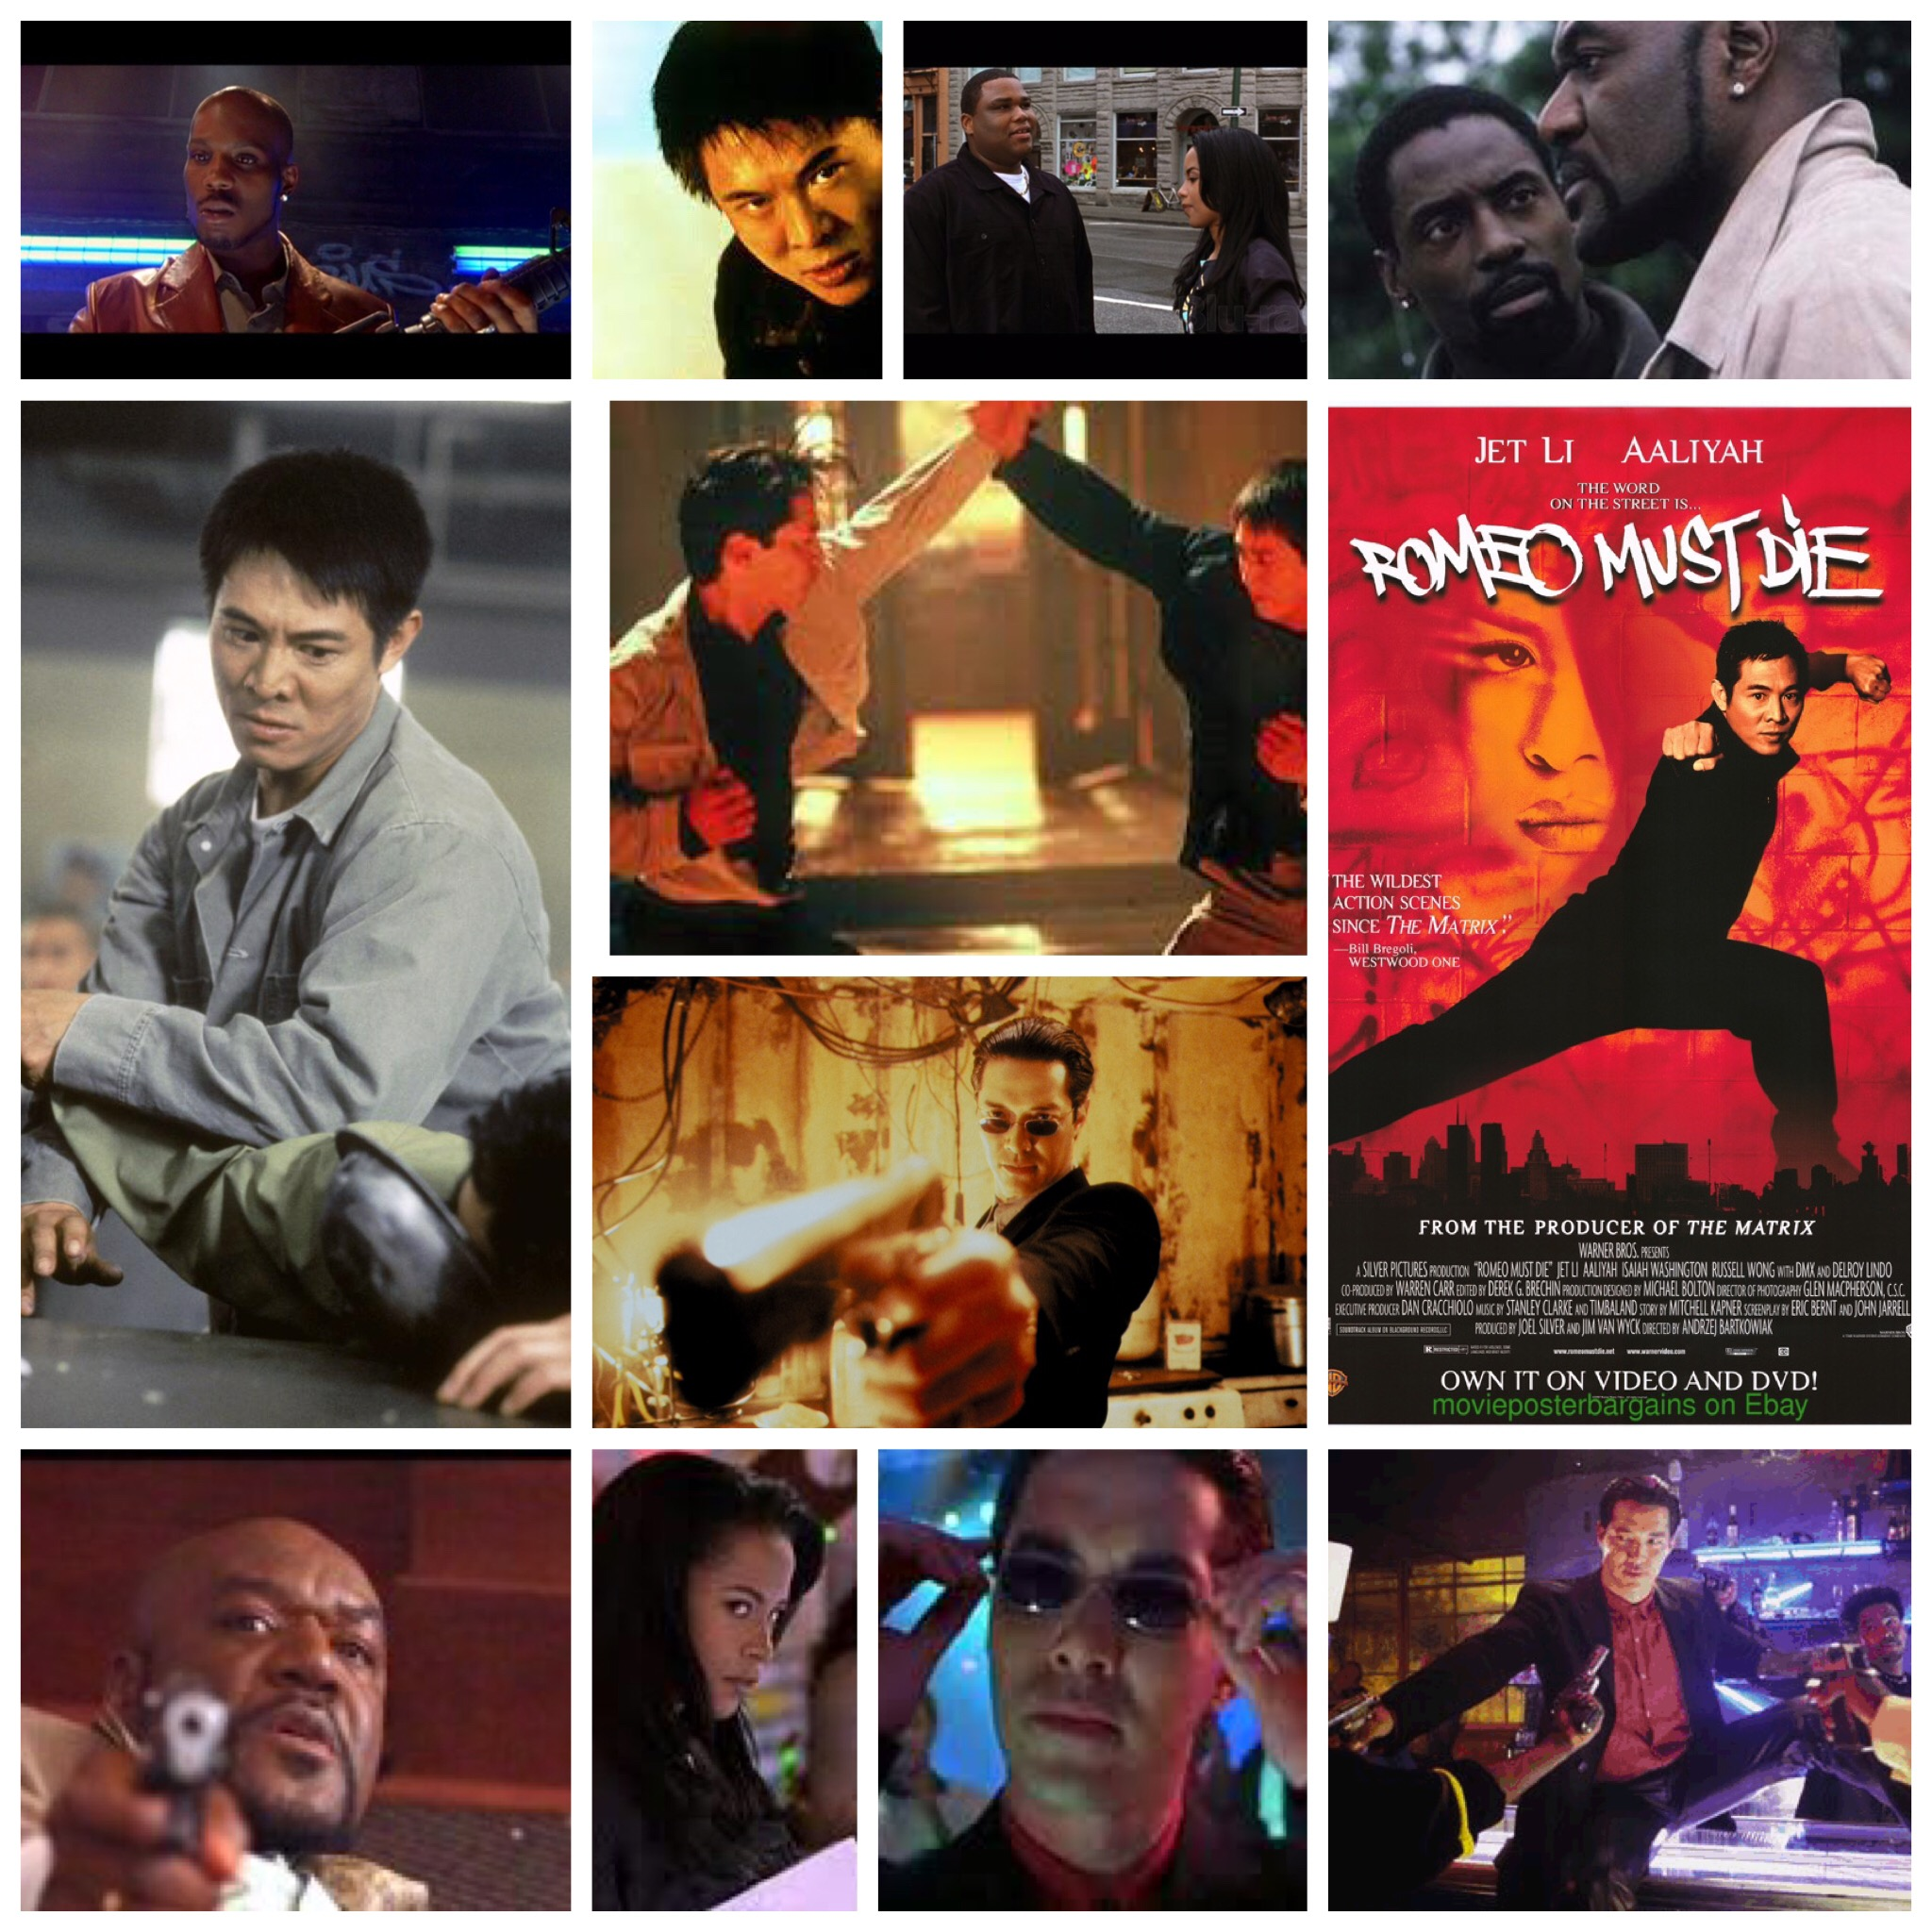 andrzej bartkowiaks romeo must die is not a great flick but i still somehow enjoy it if only for a few stylish scenes and the presence of aaliyah before - Romeo Must Com